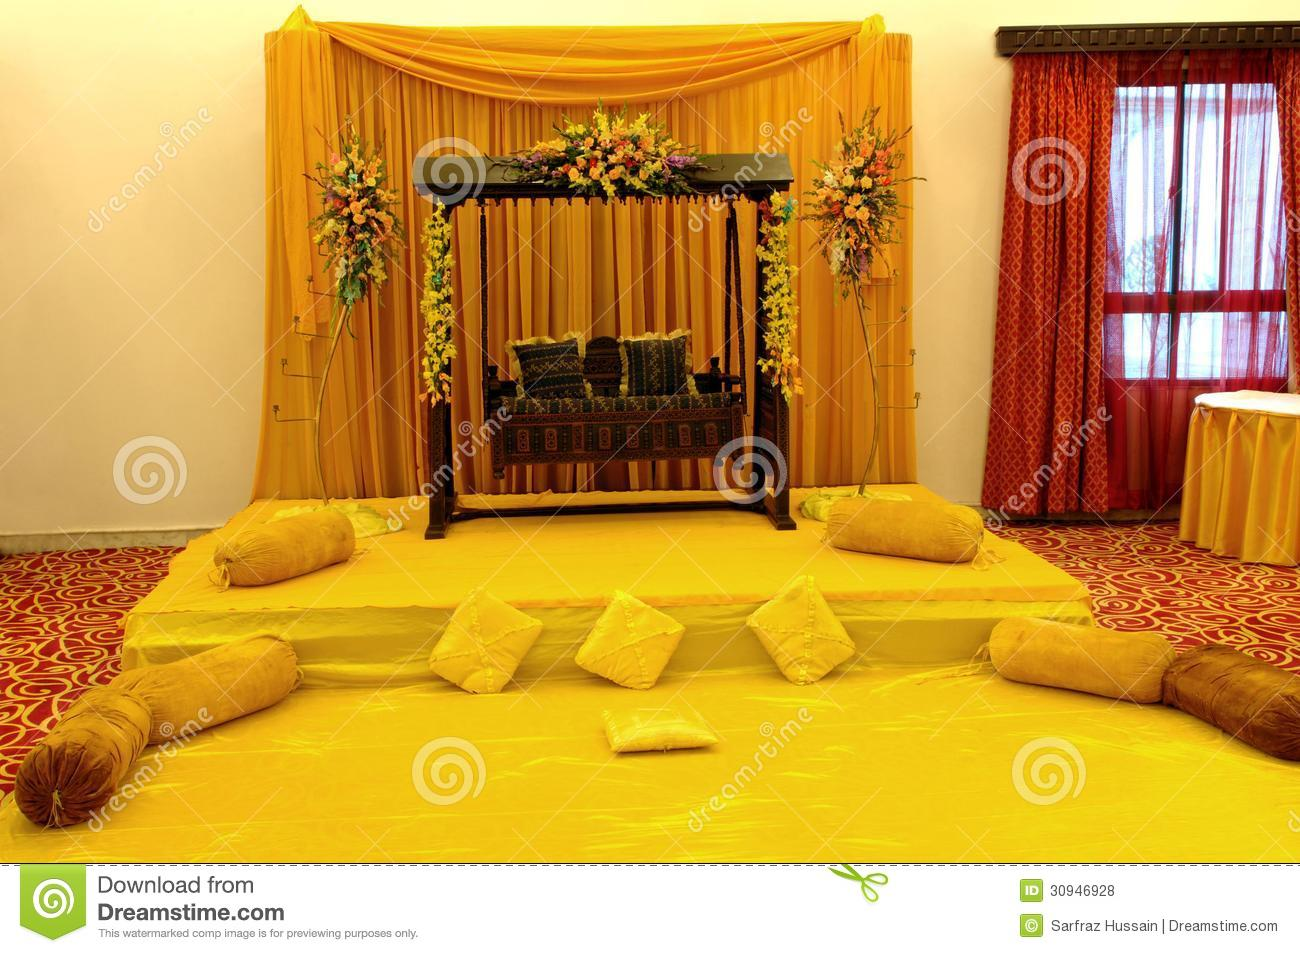 Mehndi Arrangement Royalty Free Stock Photos Image 30946928